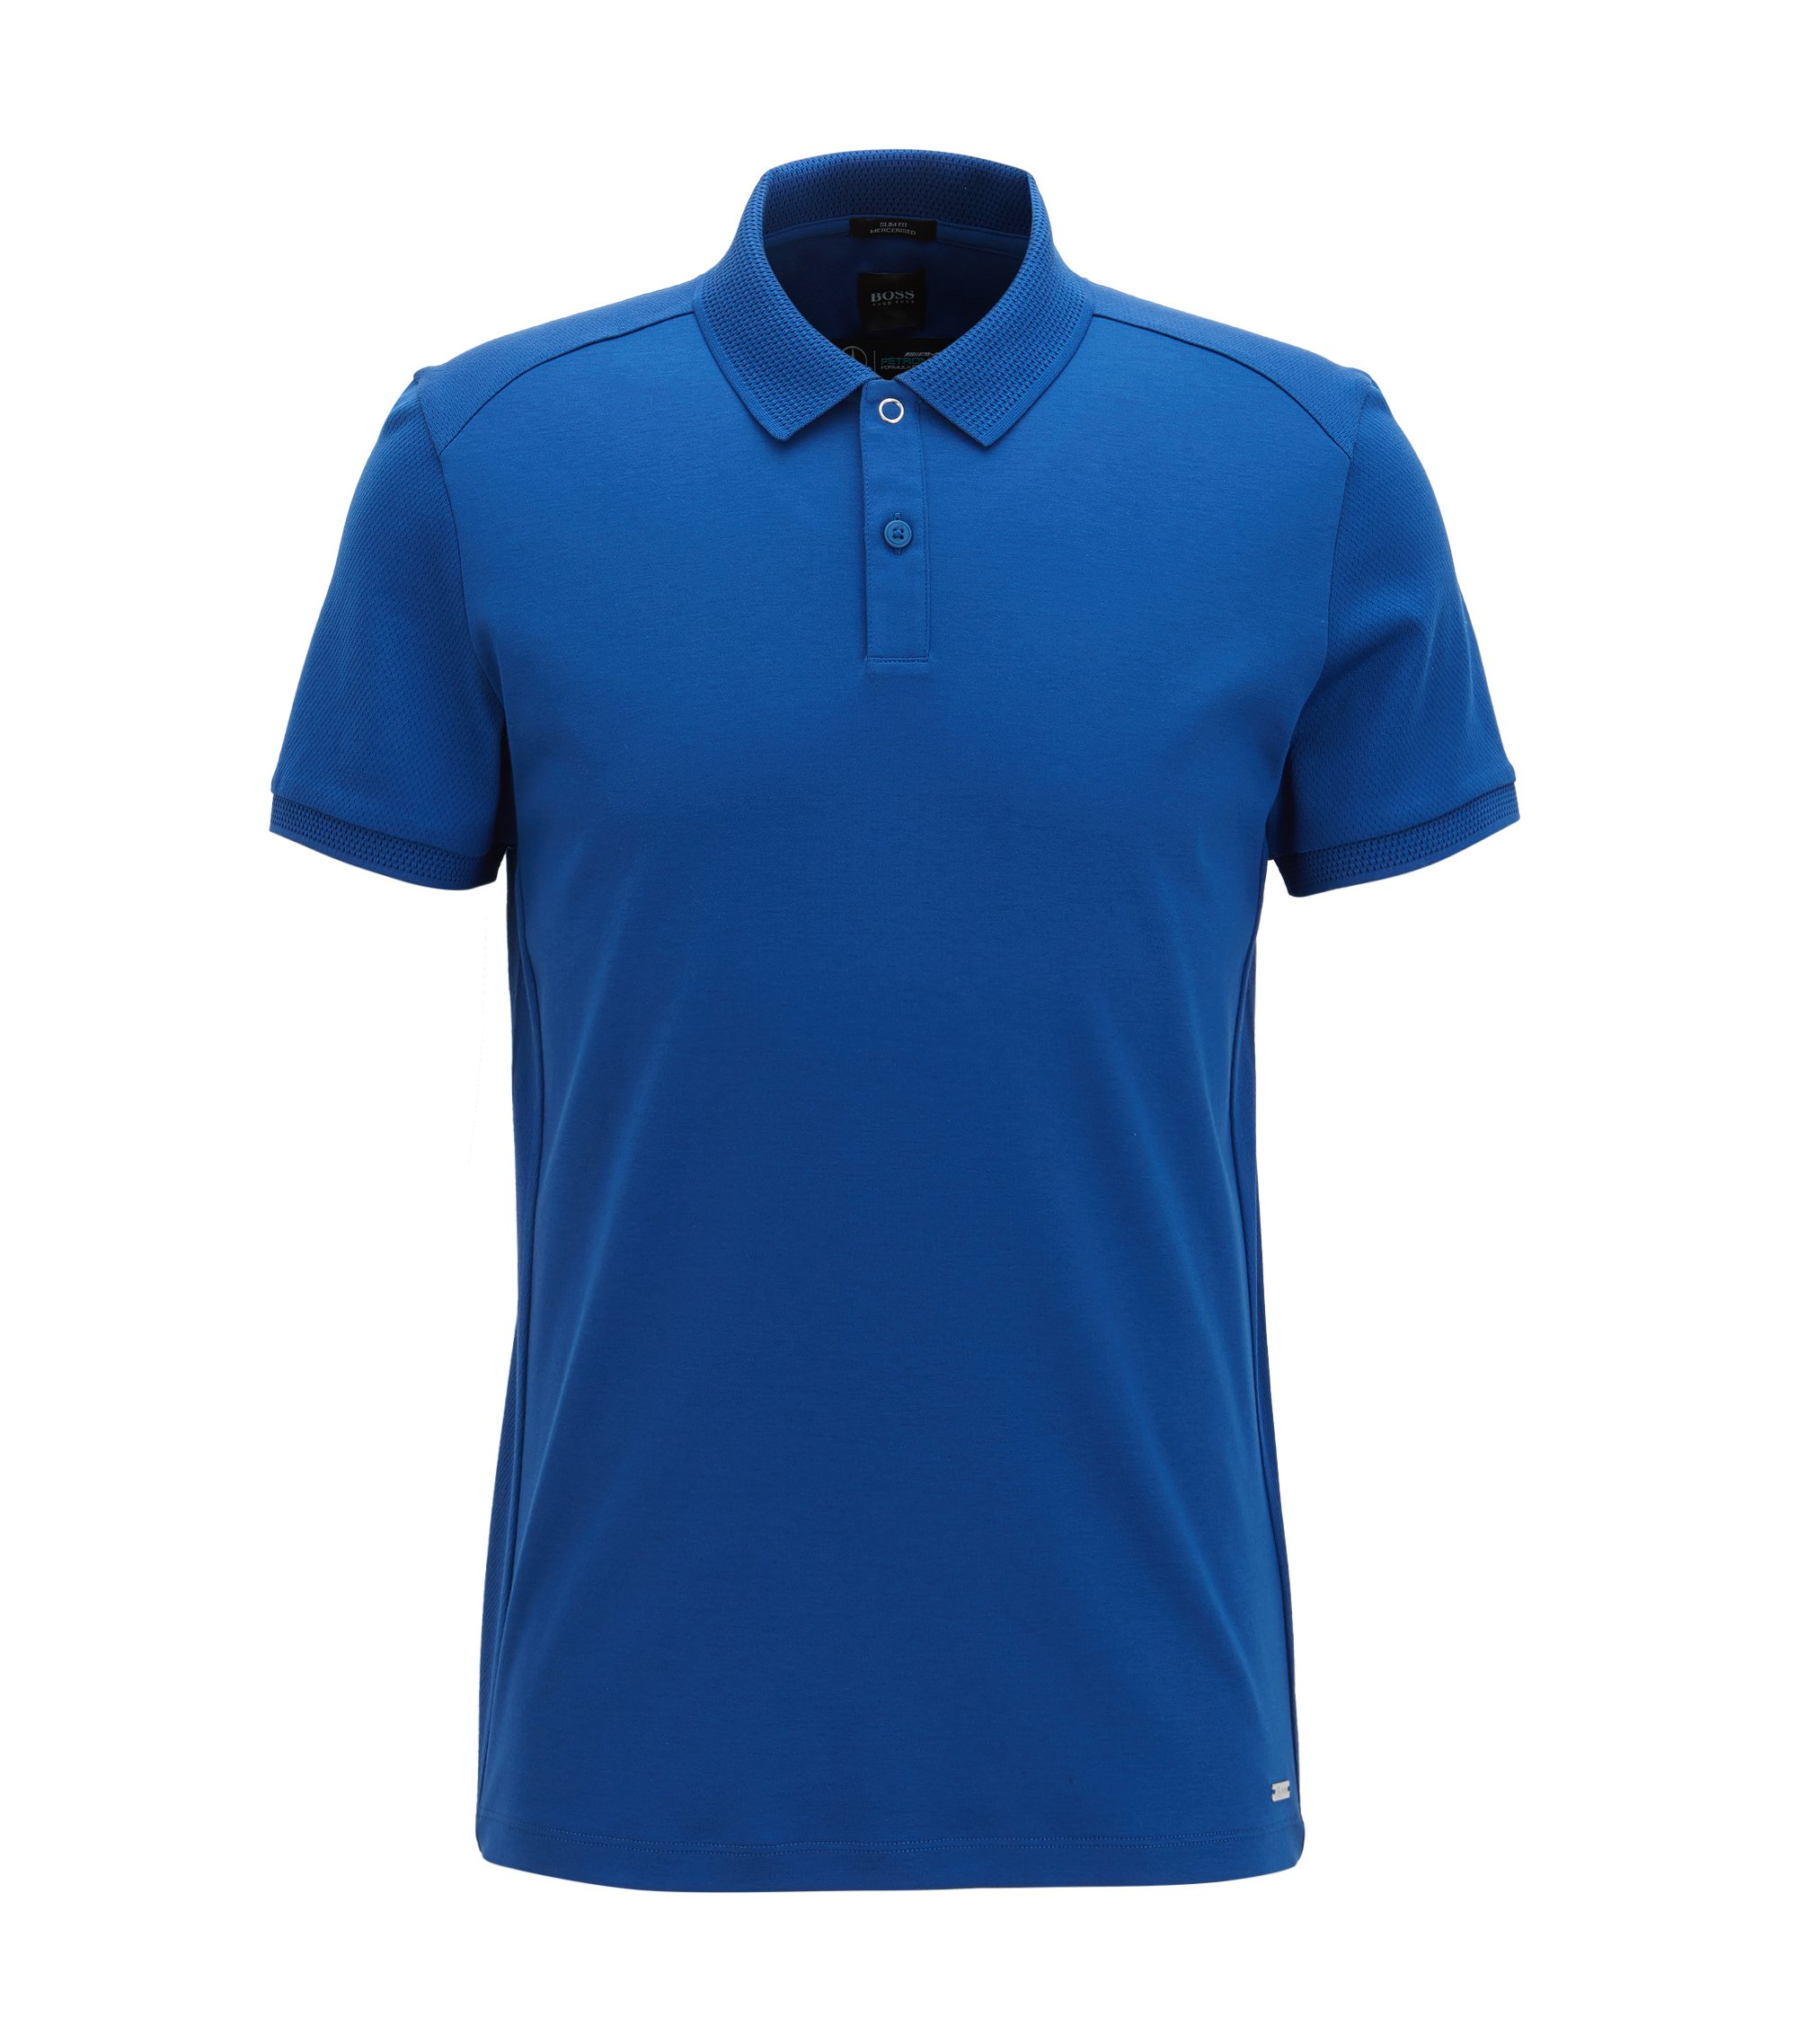 Mercedes-Benz Mercerized Cotton Polo Shirt, Slim Fit | Pollard, Blue